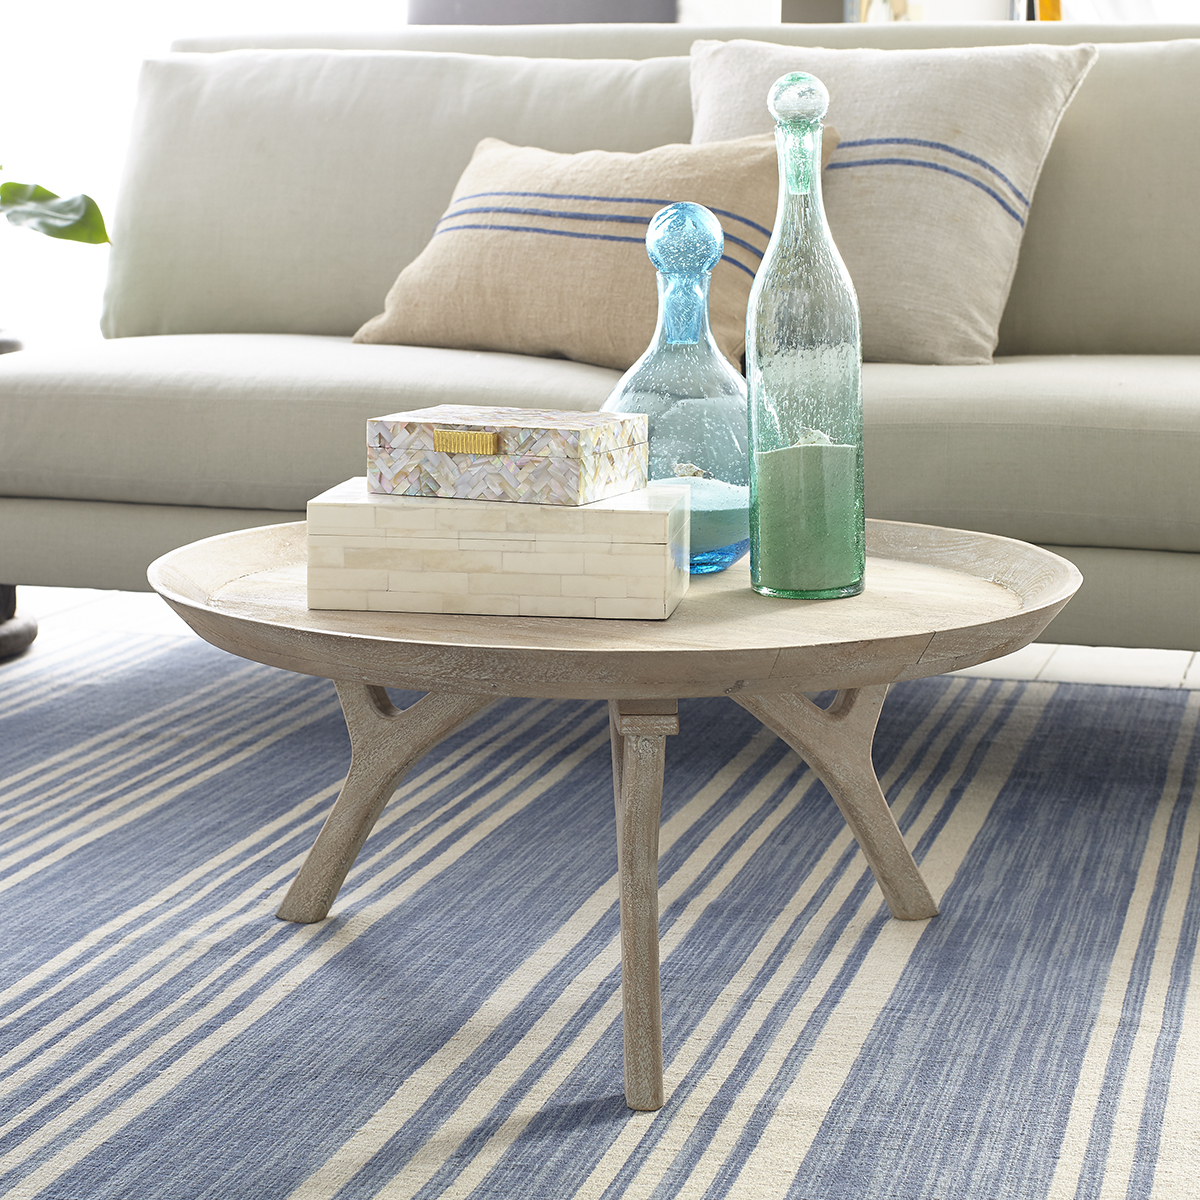 Chiseled Edge Coffee Tables Pertaining To Latest Traditional Coffee Table (View 16 of 20)